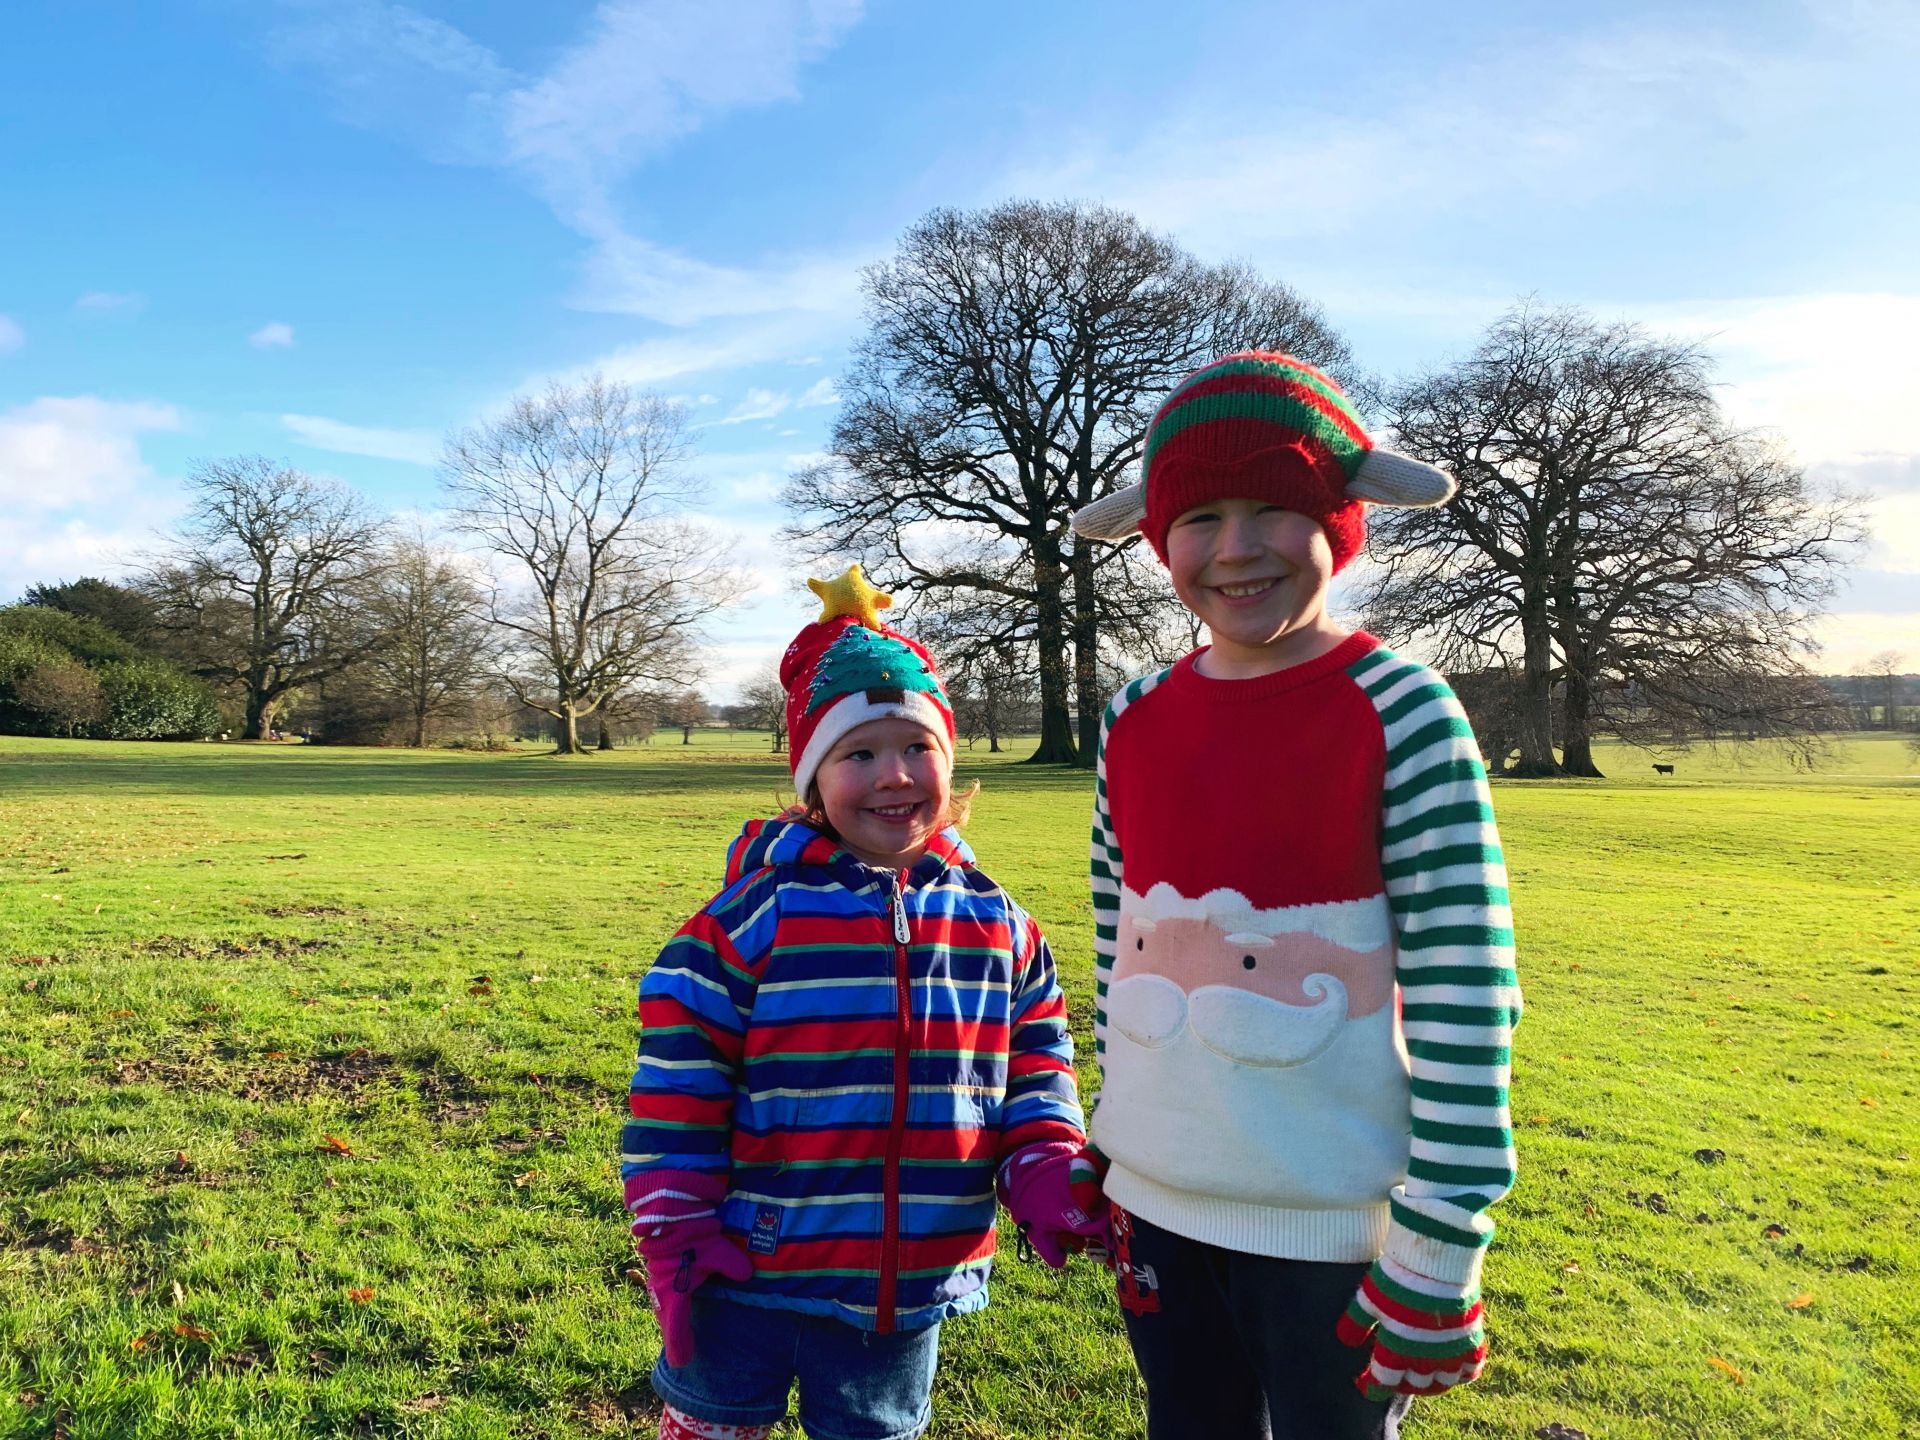 two young children wearing Christmas clothing